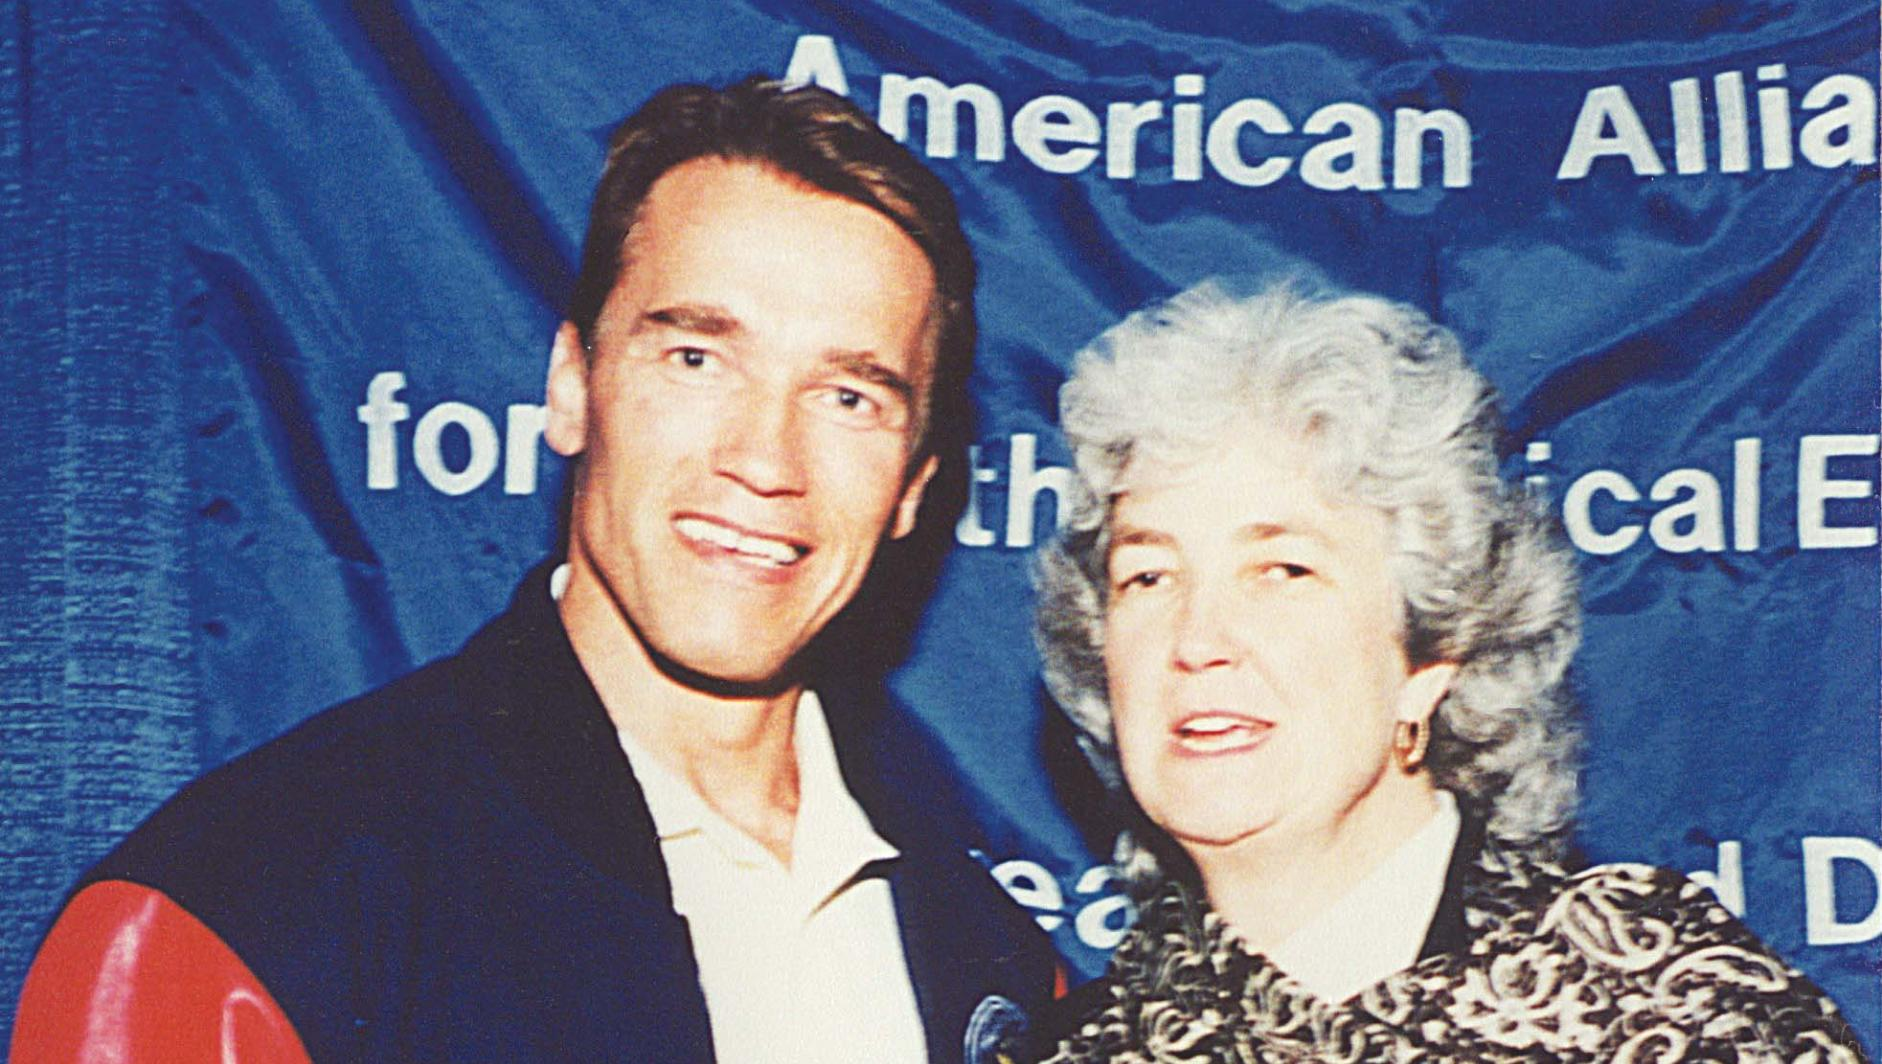 Murray with Arnold Schwarzenegger, then chair of the President's Council on Physical Fitness